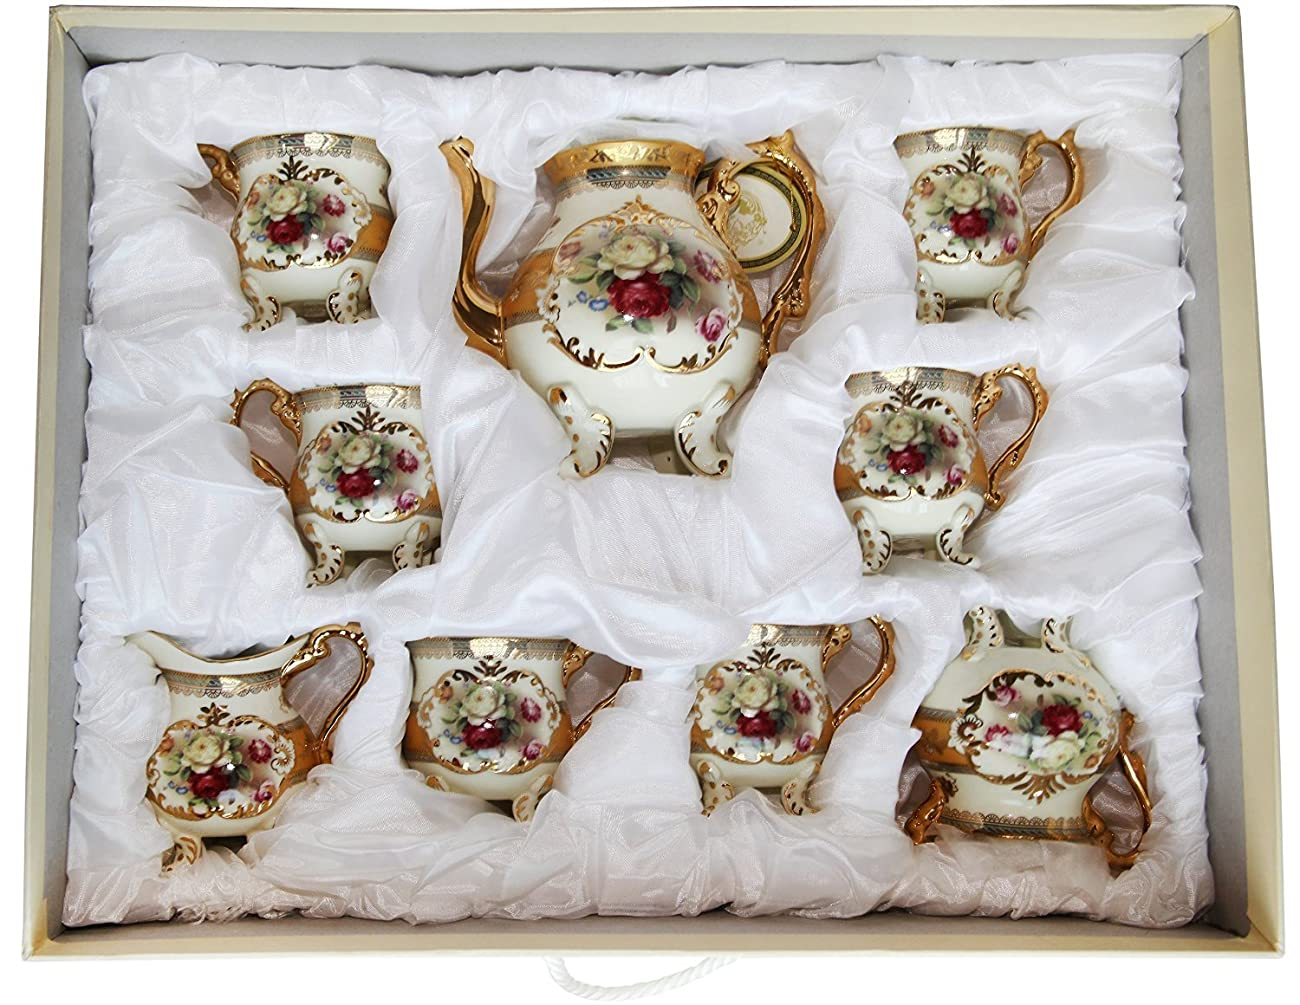 Royal Porcelain 10-Piece Vintage Rose-Decorated Dining Tea Cup Set, Service for 6, Handmade & Hand-Painted, 24K Gold-Plated Bone China Tableware 5